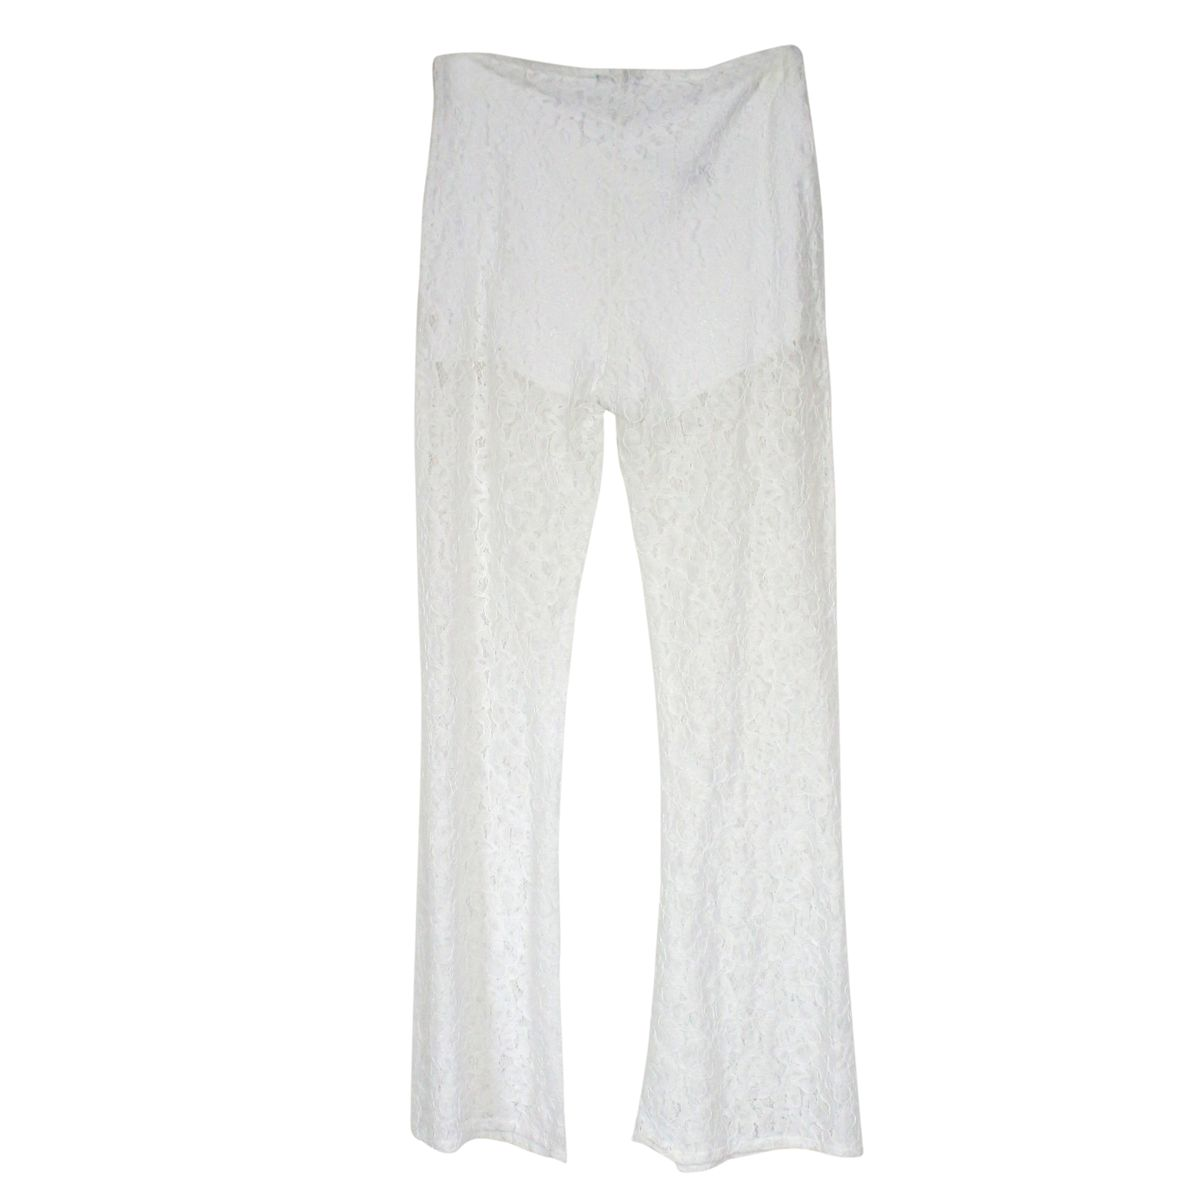 Wide lace trousers White Patrizia Pepe